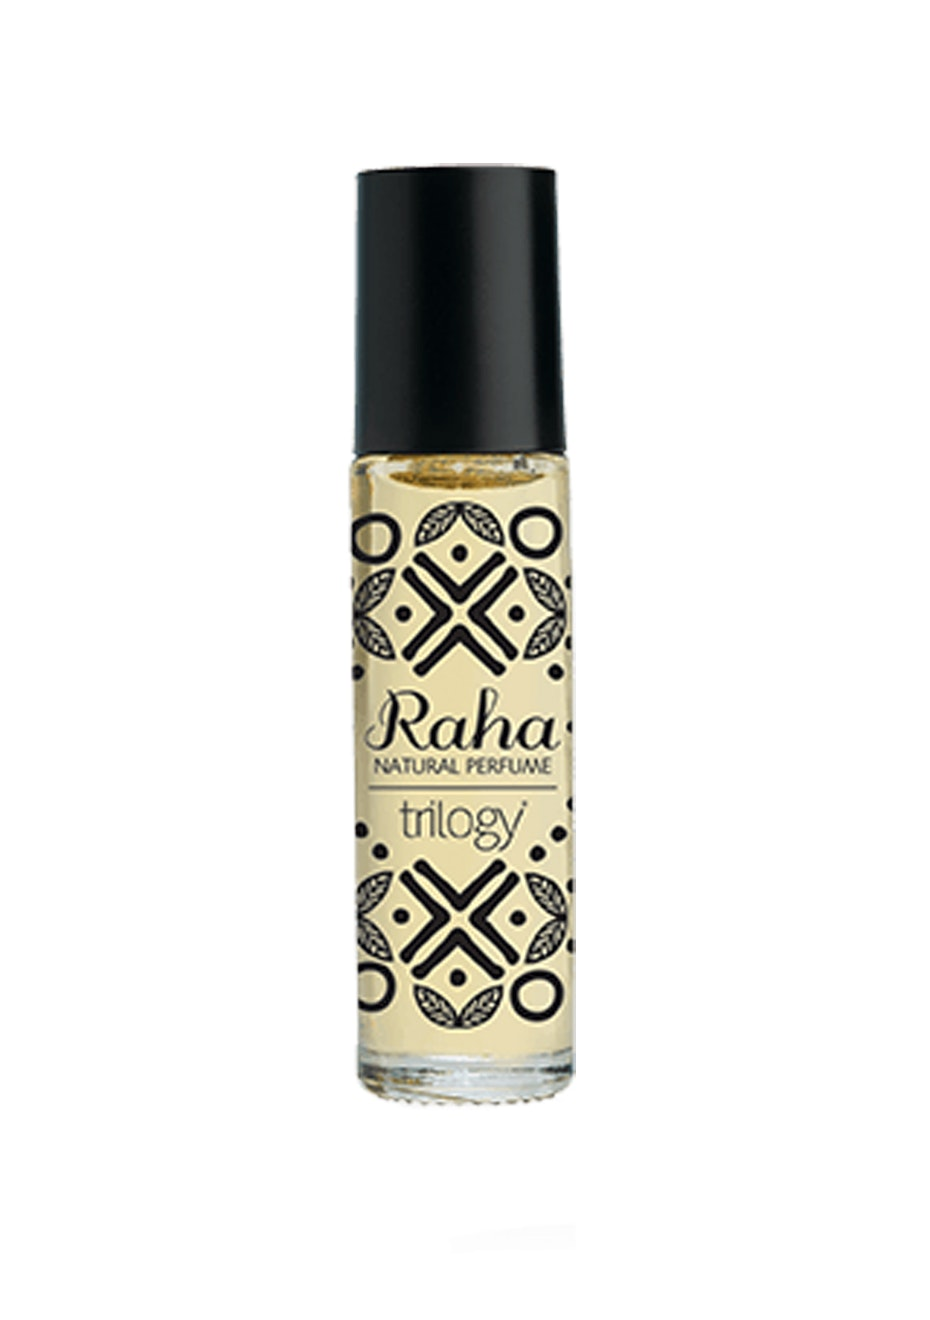 Trilogy - So They Can RAHA Natural Perfume (7.5ml)